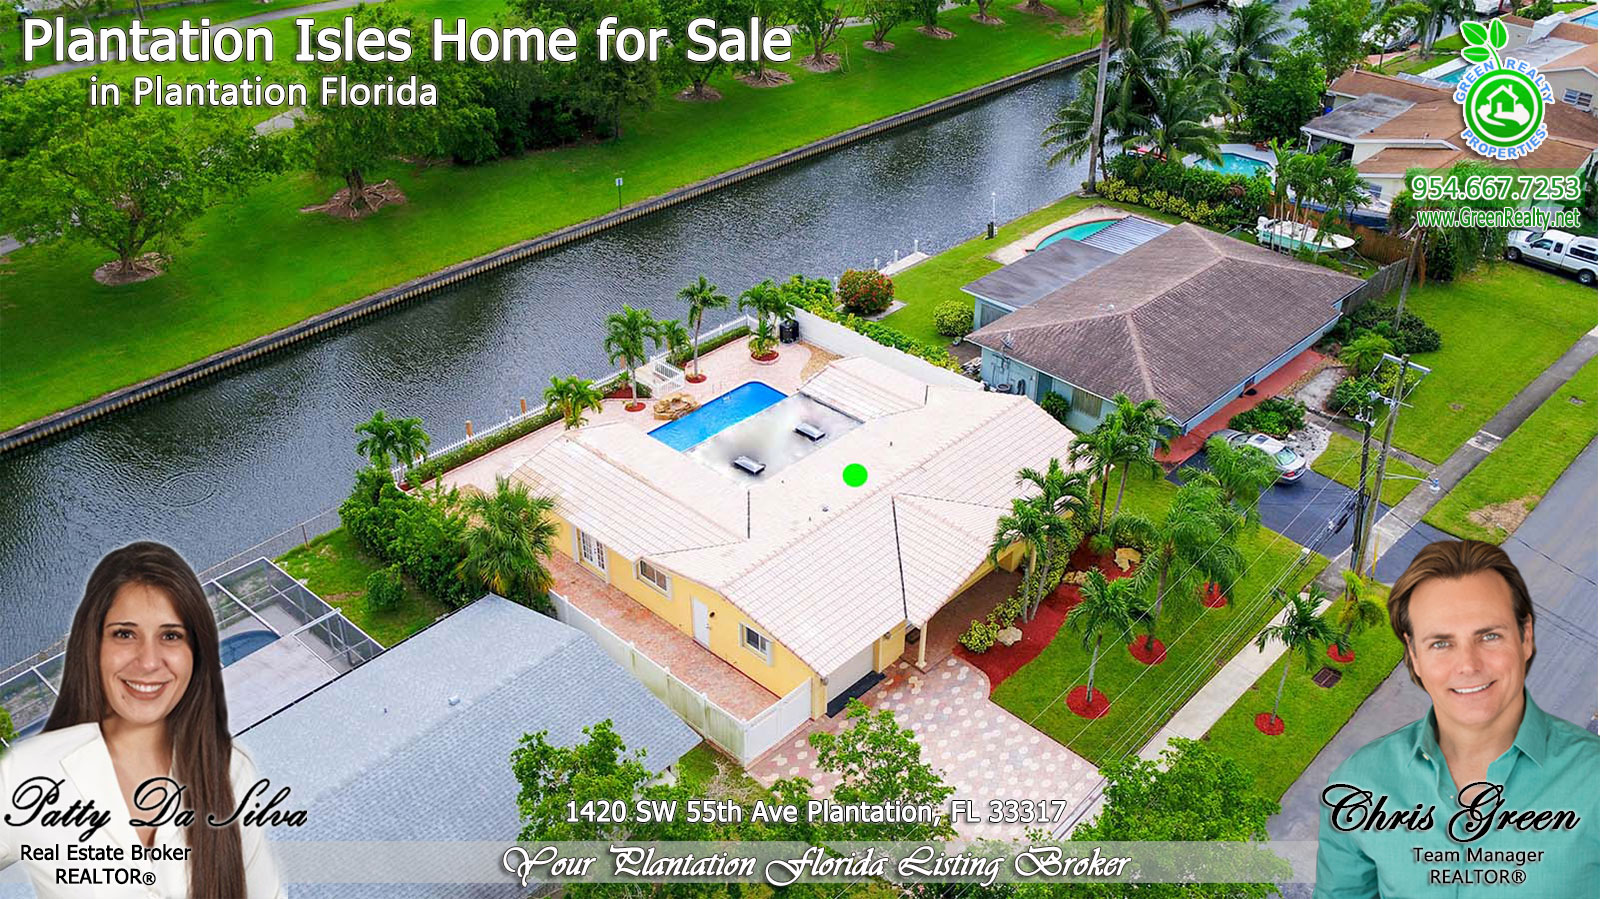 36 Plantation-FL-Homes-For-Sale-patty-da-silva